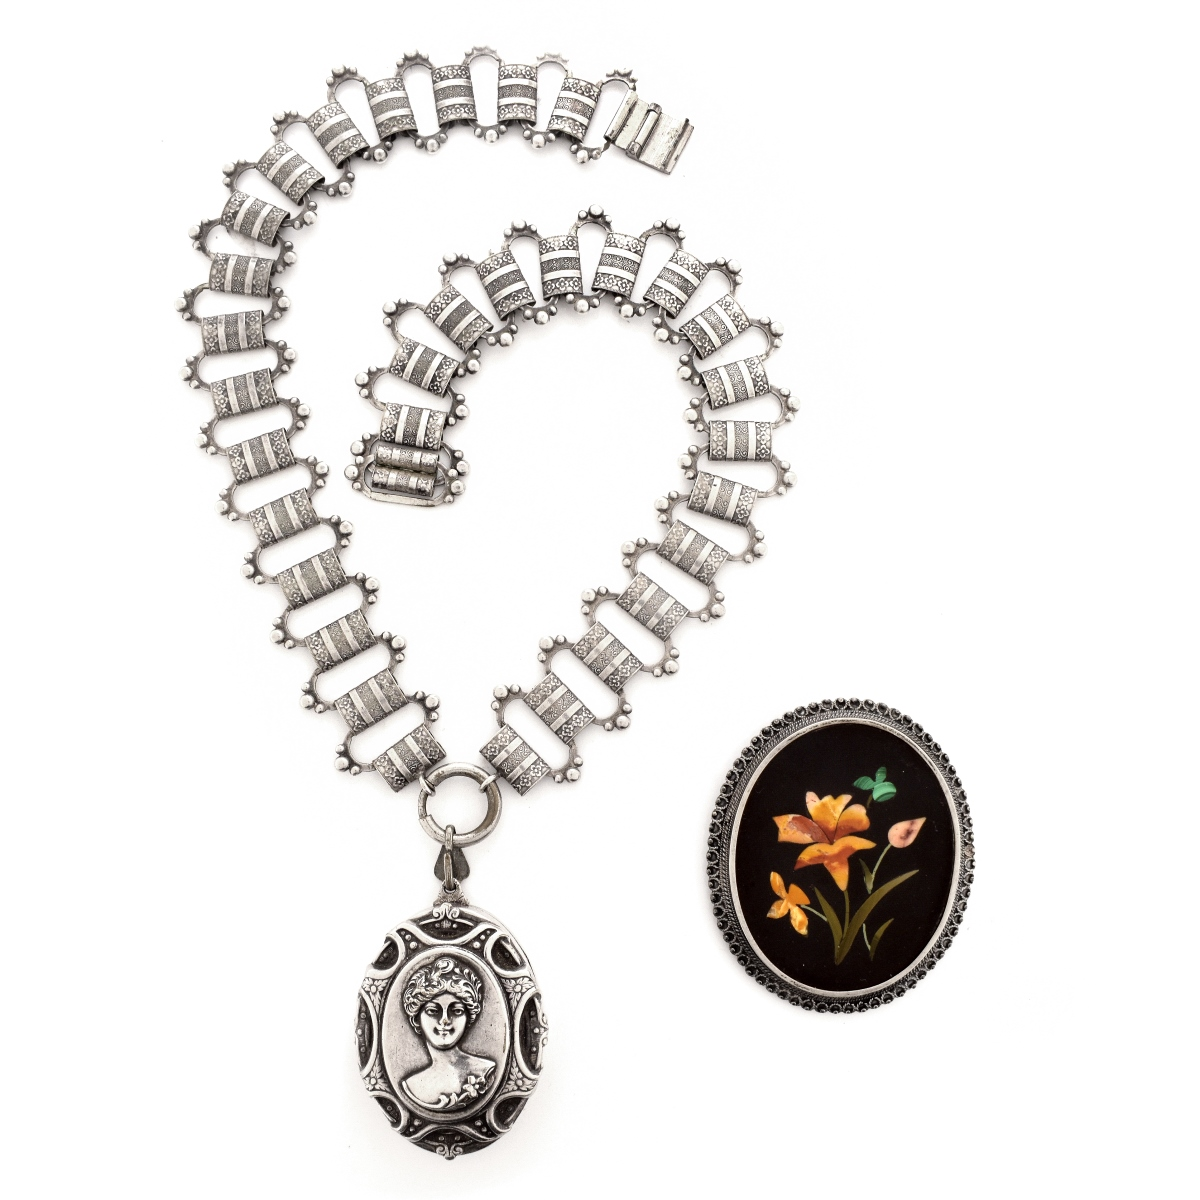 Antique Silver Necklace and Pietra Dura Pendant